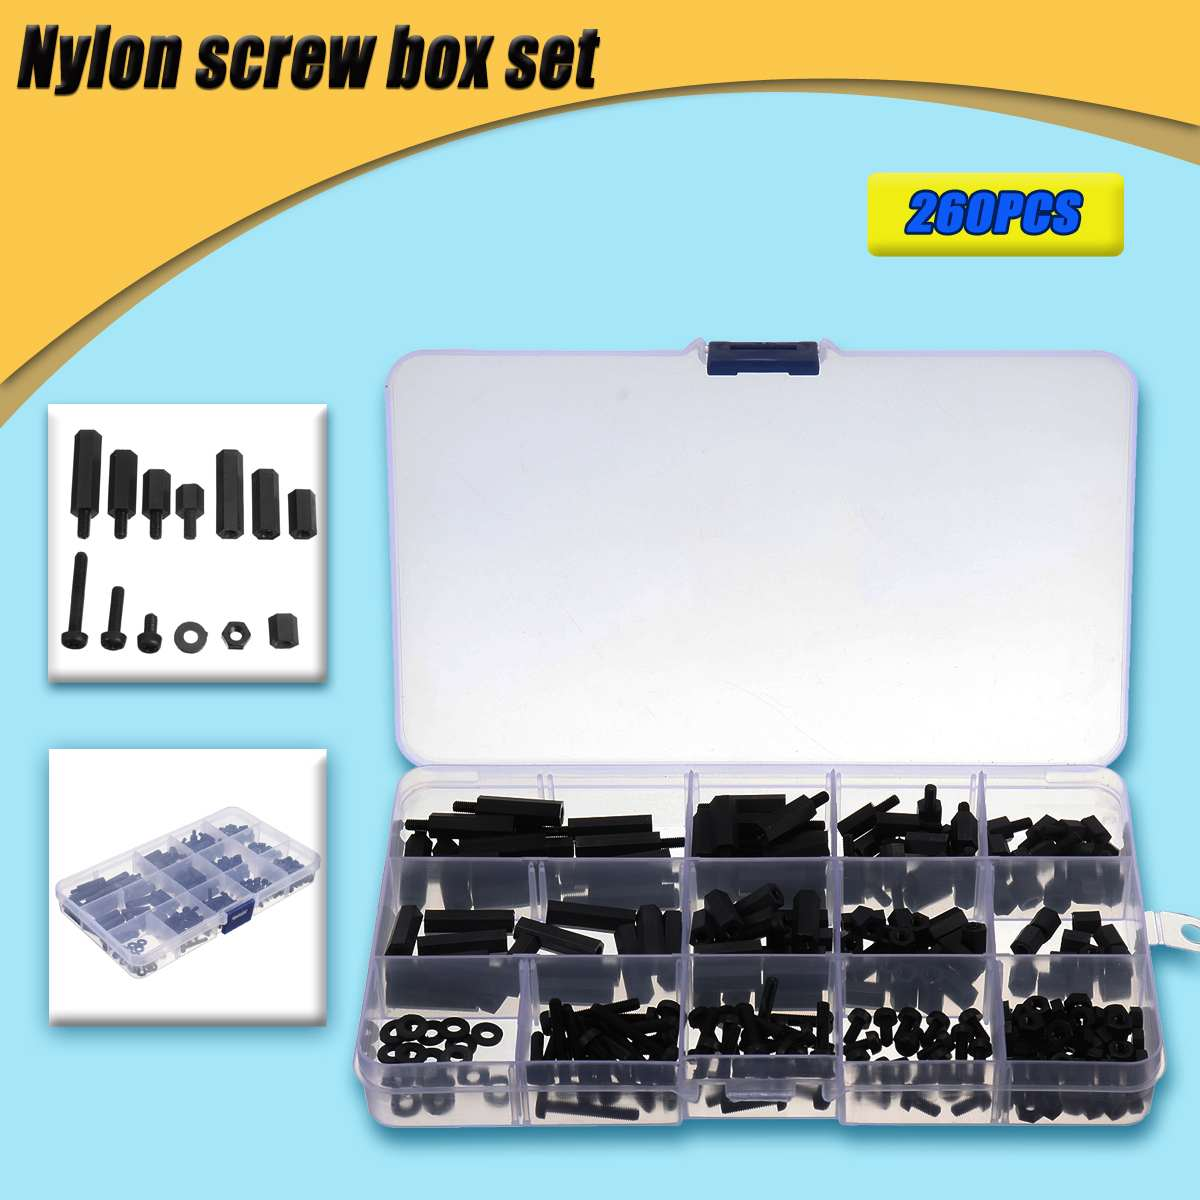 260Pcs M3 Black Nylon Hex Spacers Screw Nuts Bolt Assortment Kit Stand-off Set With Box Insulation For Electronics Components260Pcs M3 Black Nylon Hex Spacers Screw Nuts Bolt Assortment Kit Stand-off Set With Box Insulation For Electronics Components